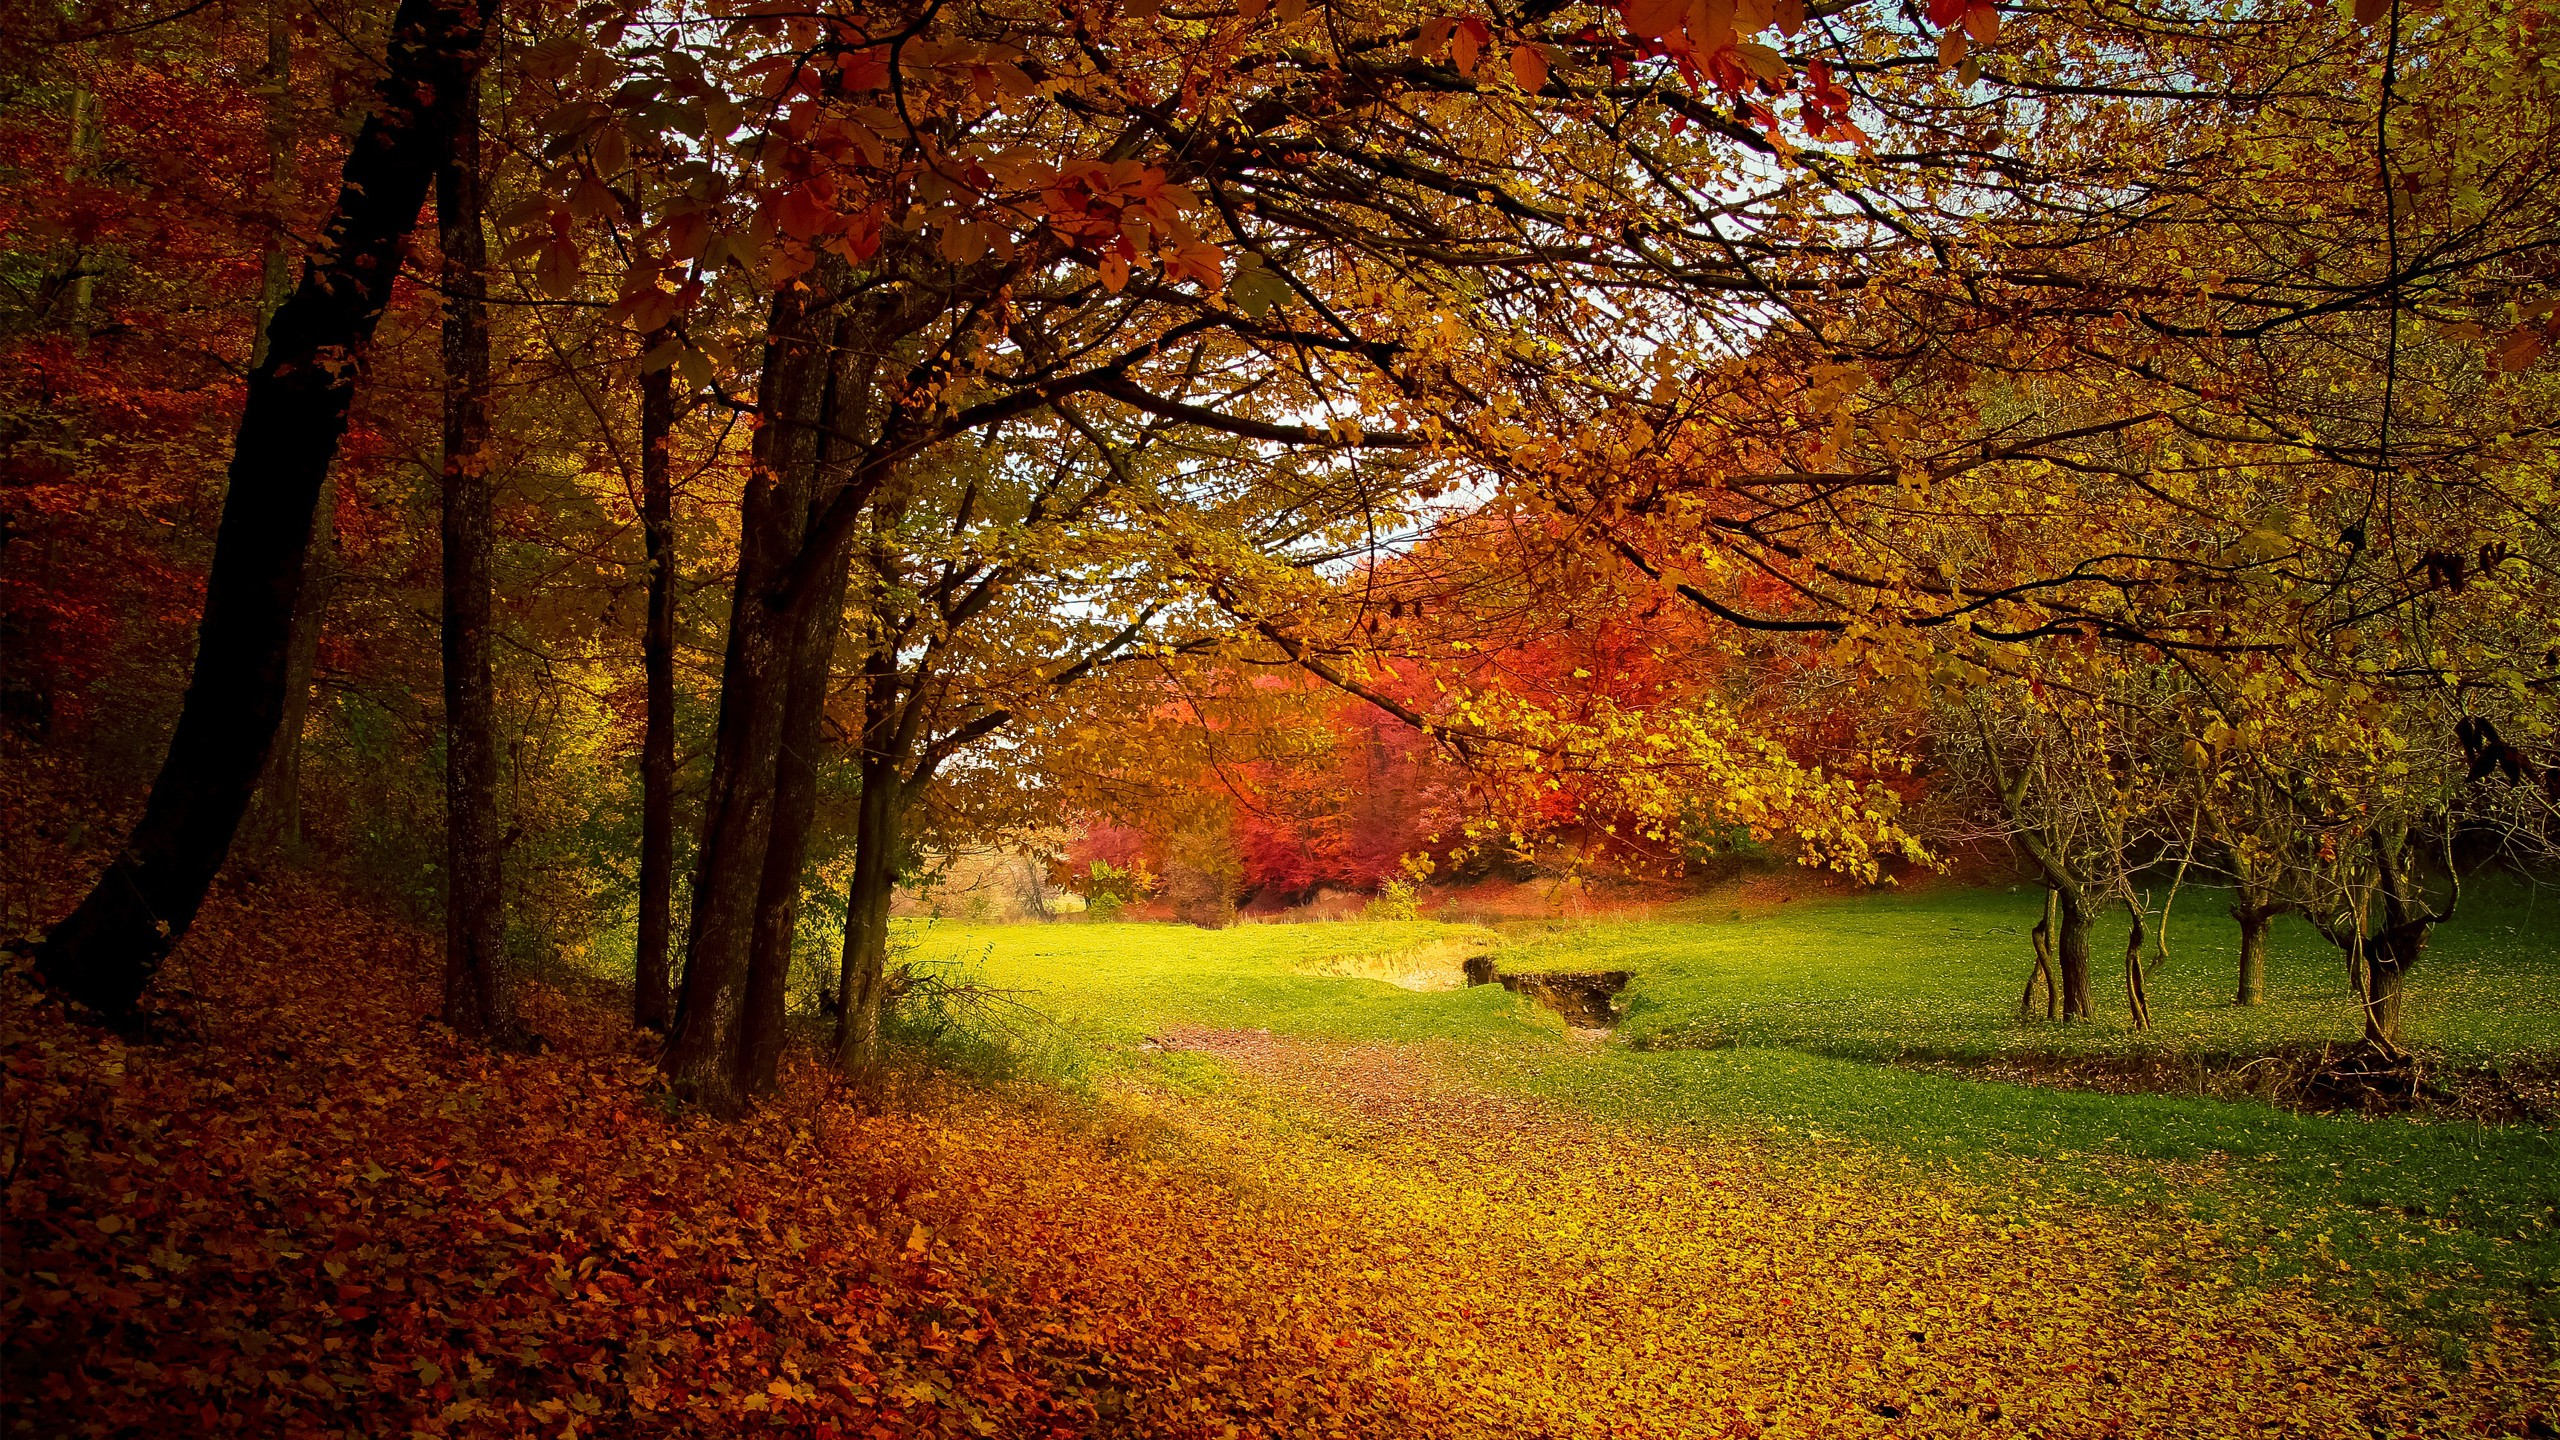 Autumn Wallpaper HD 1 Download Free Wallpapers For Desktop Mobile